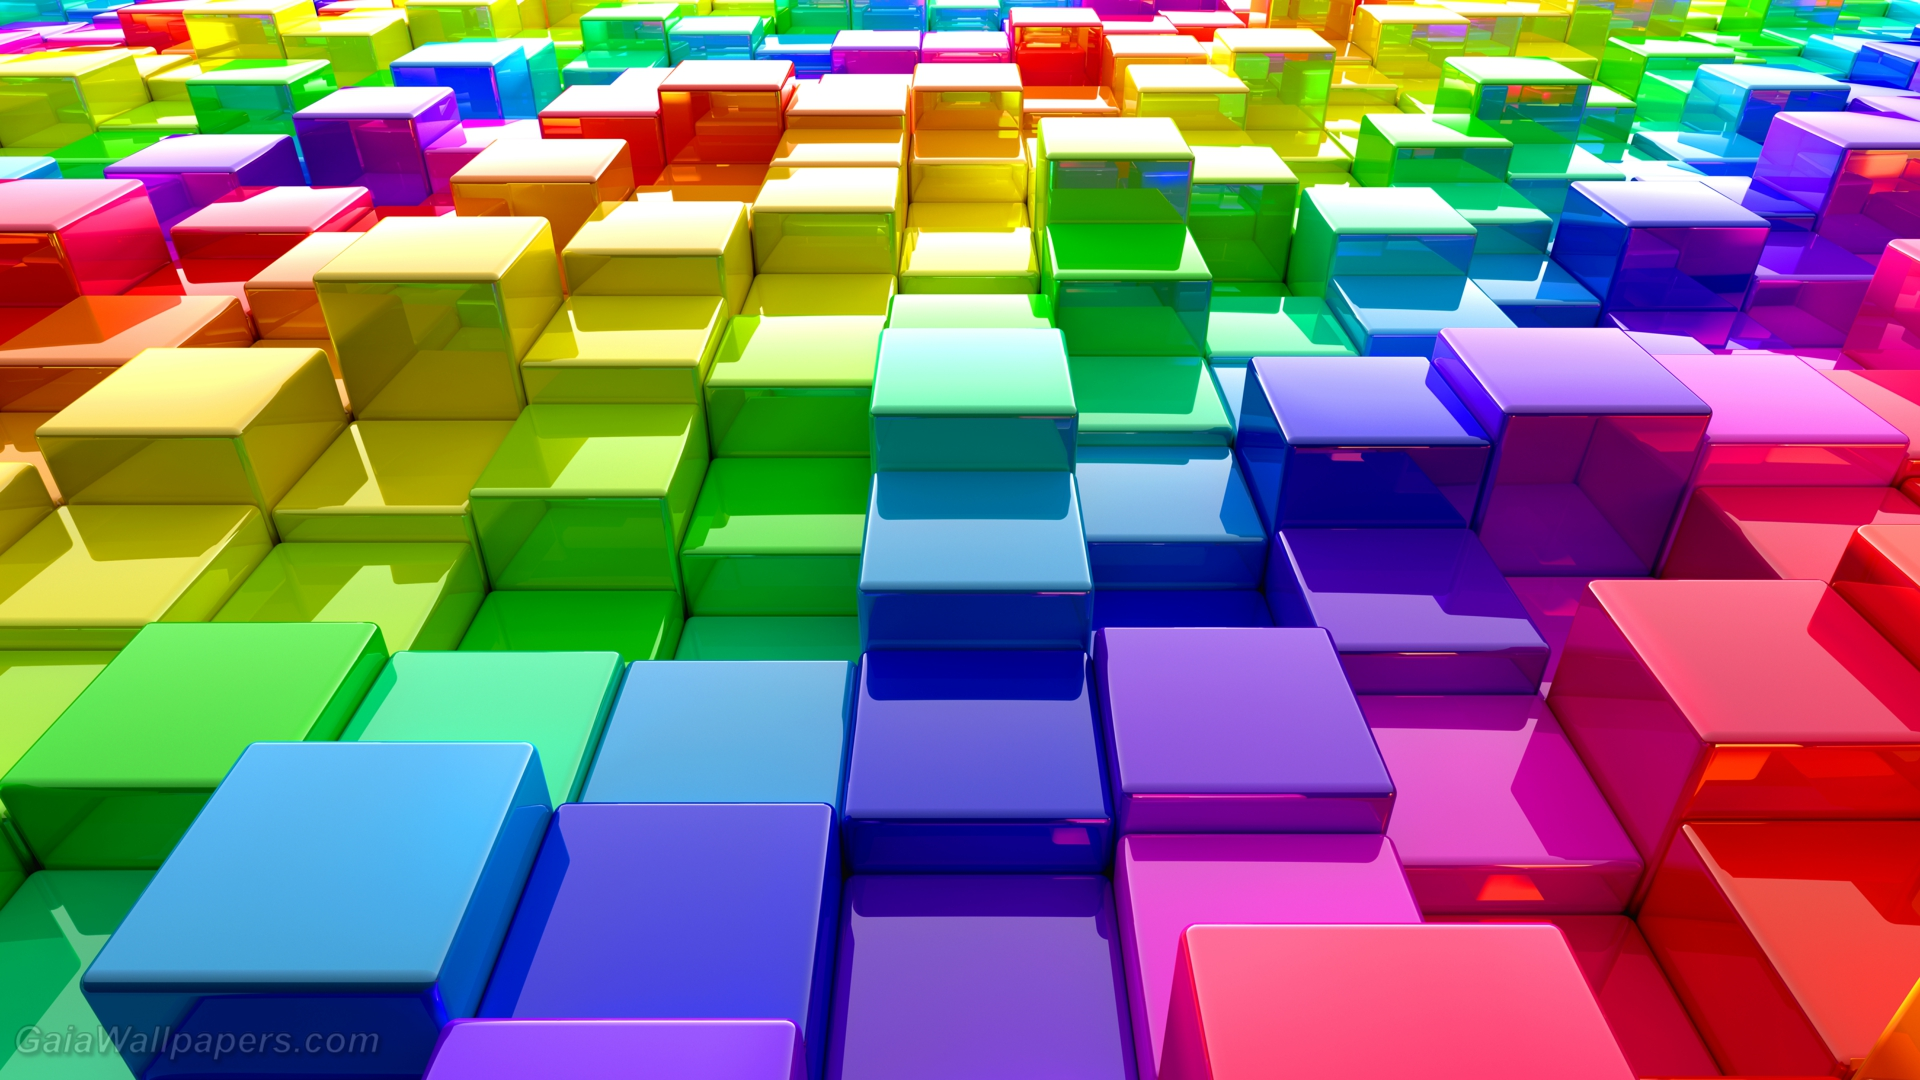 Rainbow Matrix Of Color Cubes Wallpapers 1920x1080 Free Desktop